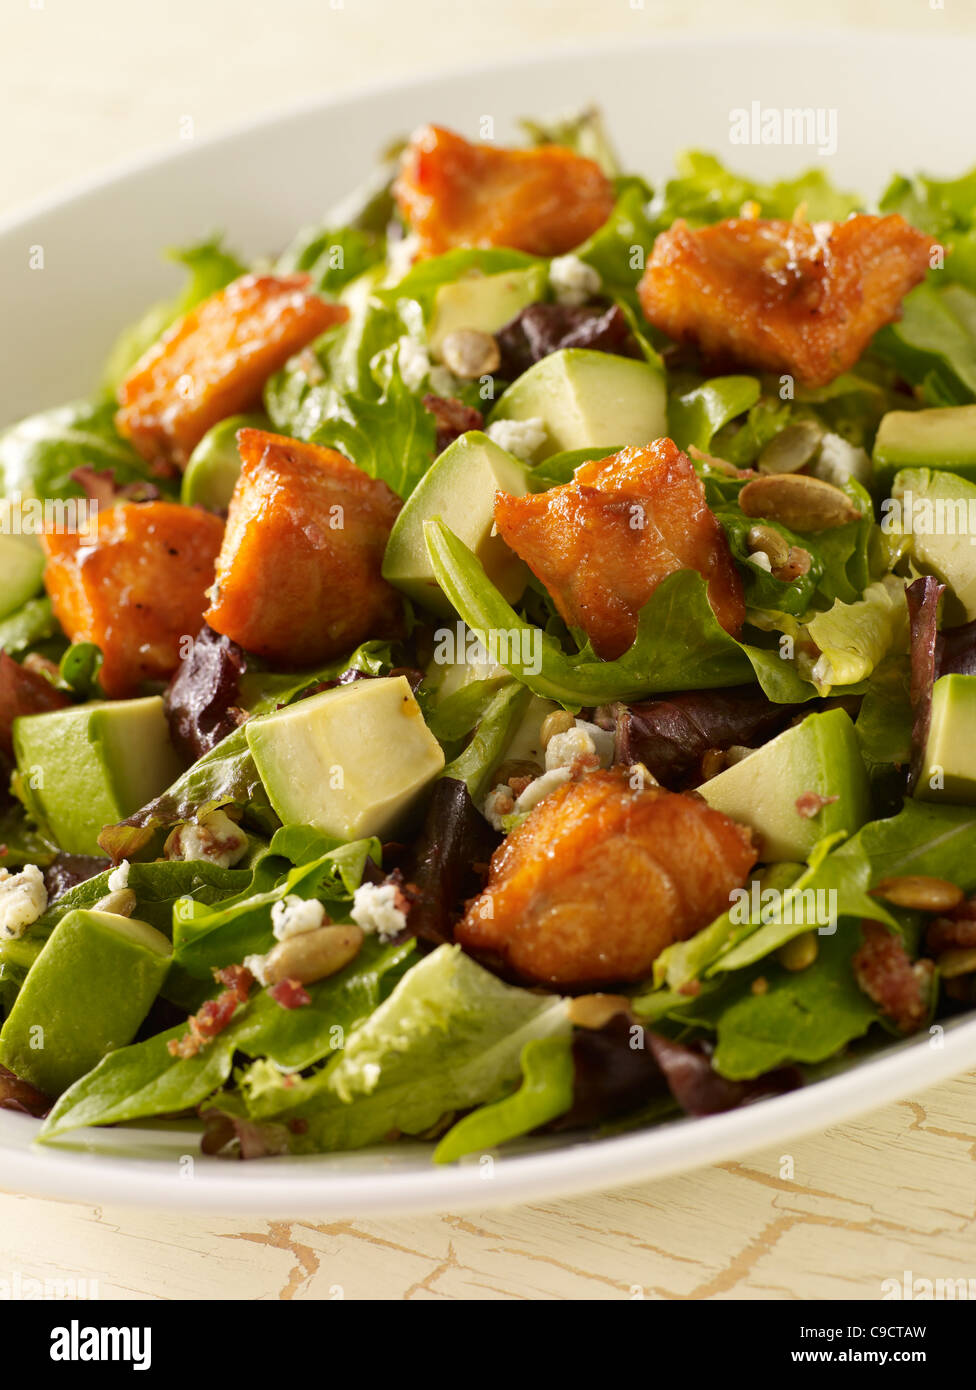 Salmon and avocado salad with leafy greens and crumbled cheese - Stock Image